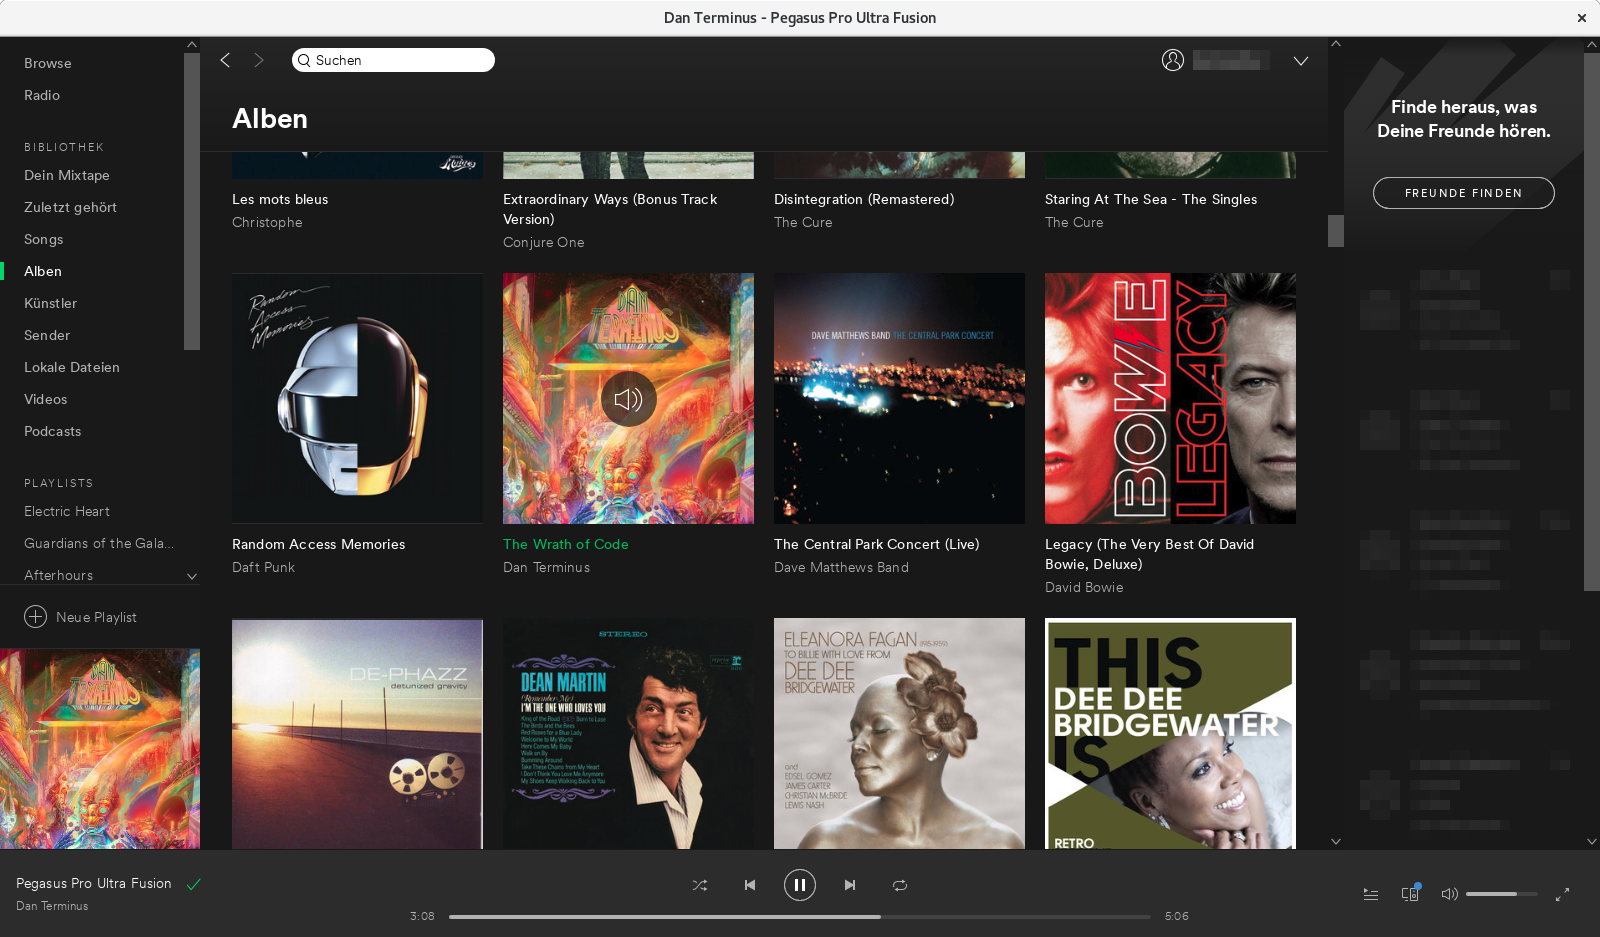 Spotify-Client.png